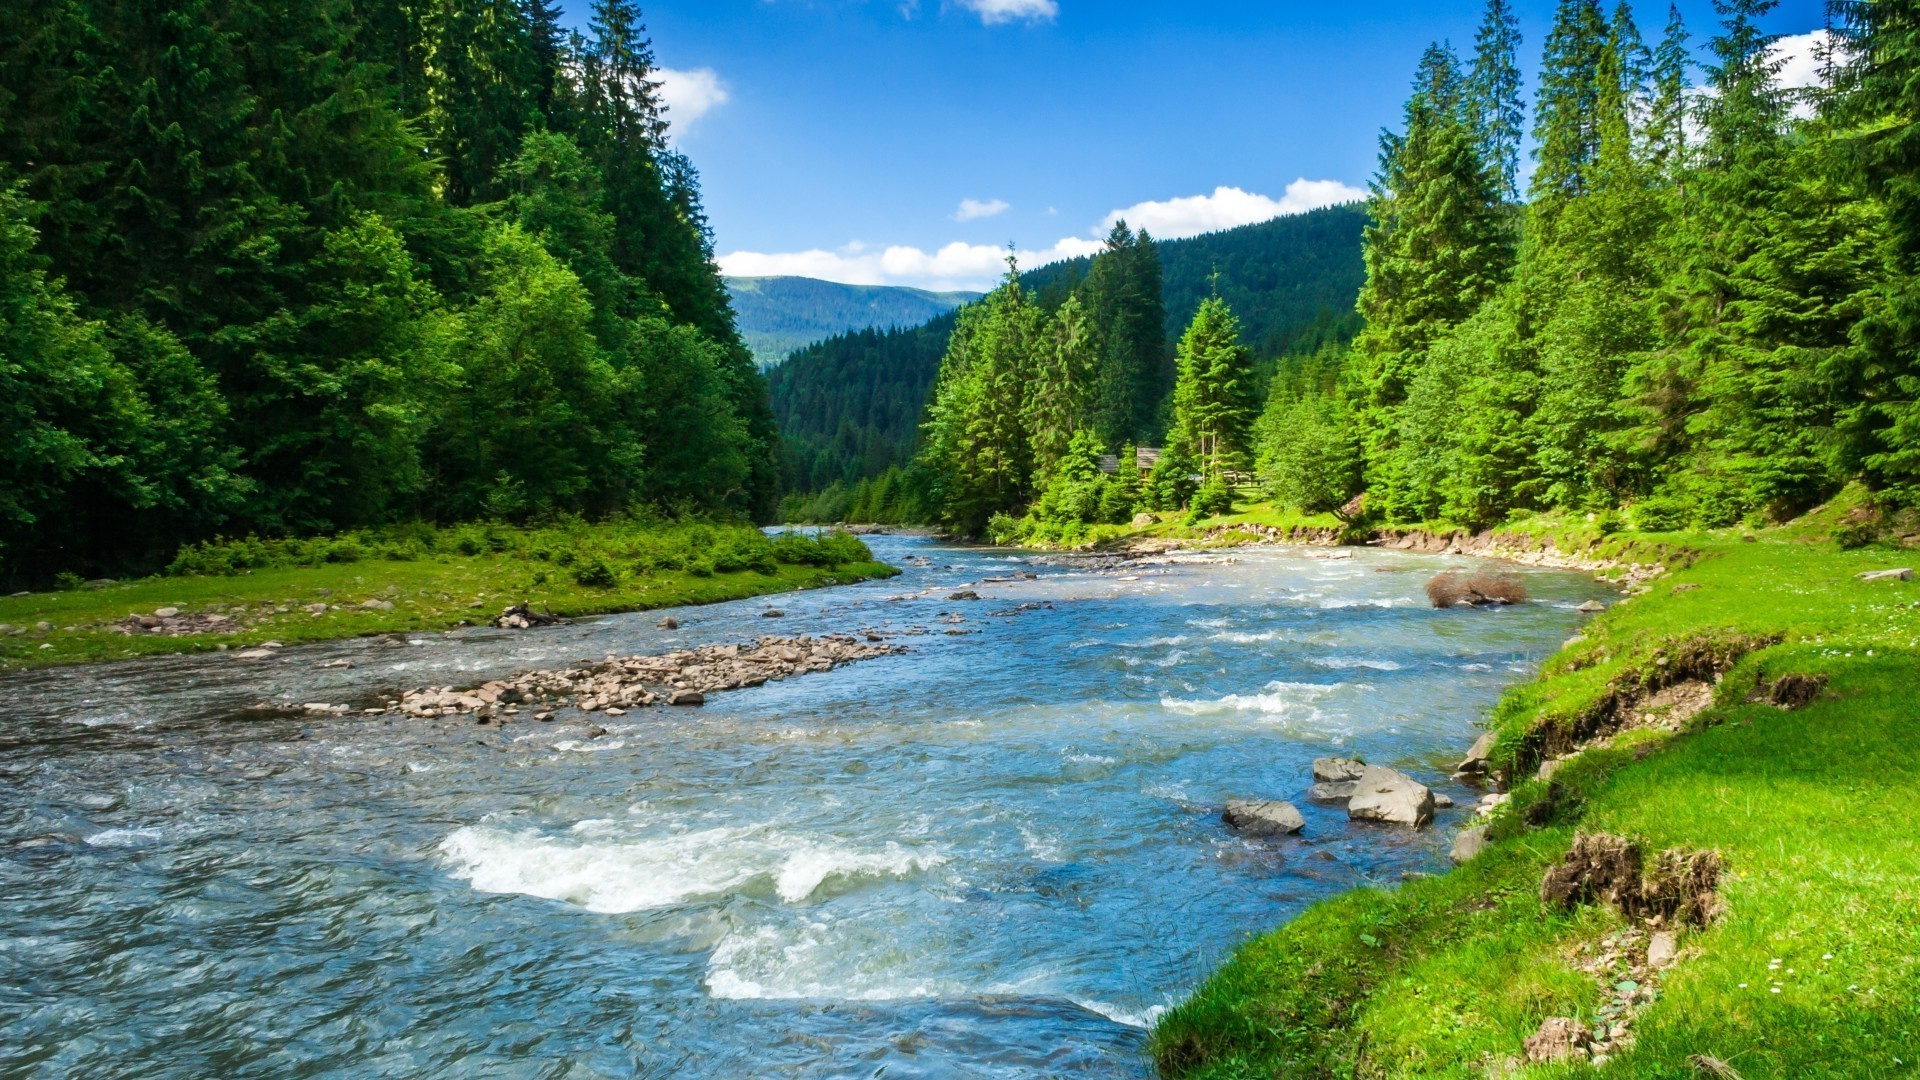 River, sun, greenery, trees. Android wallpapers for free.